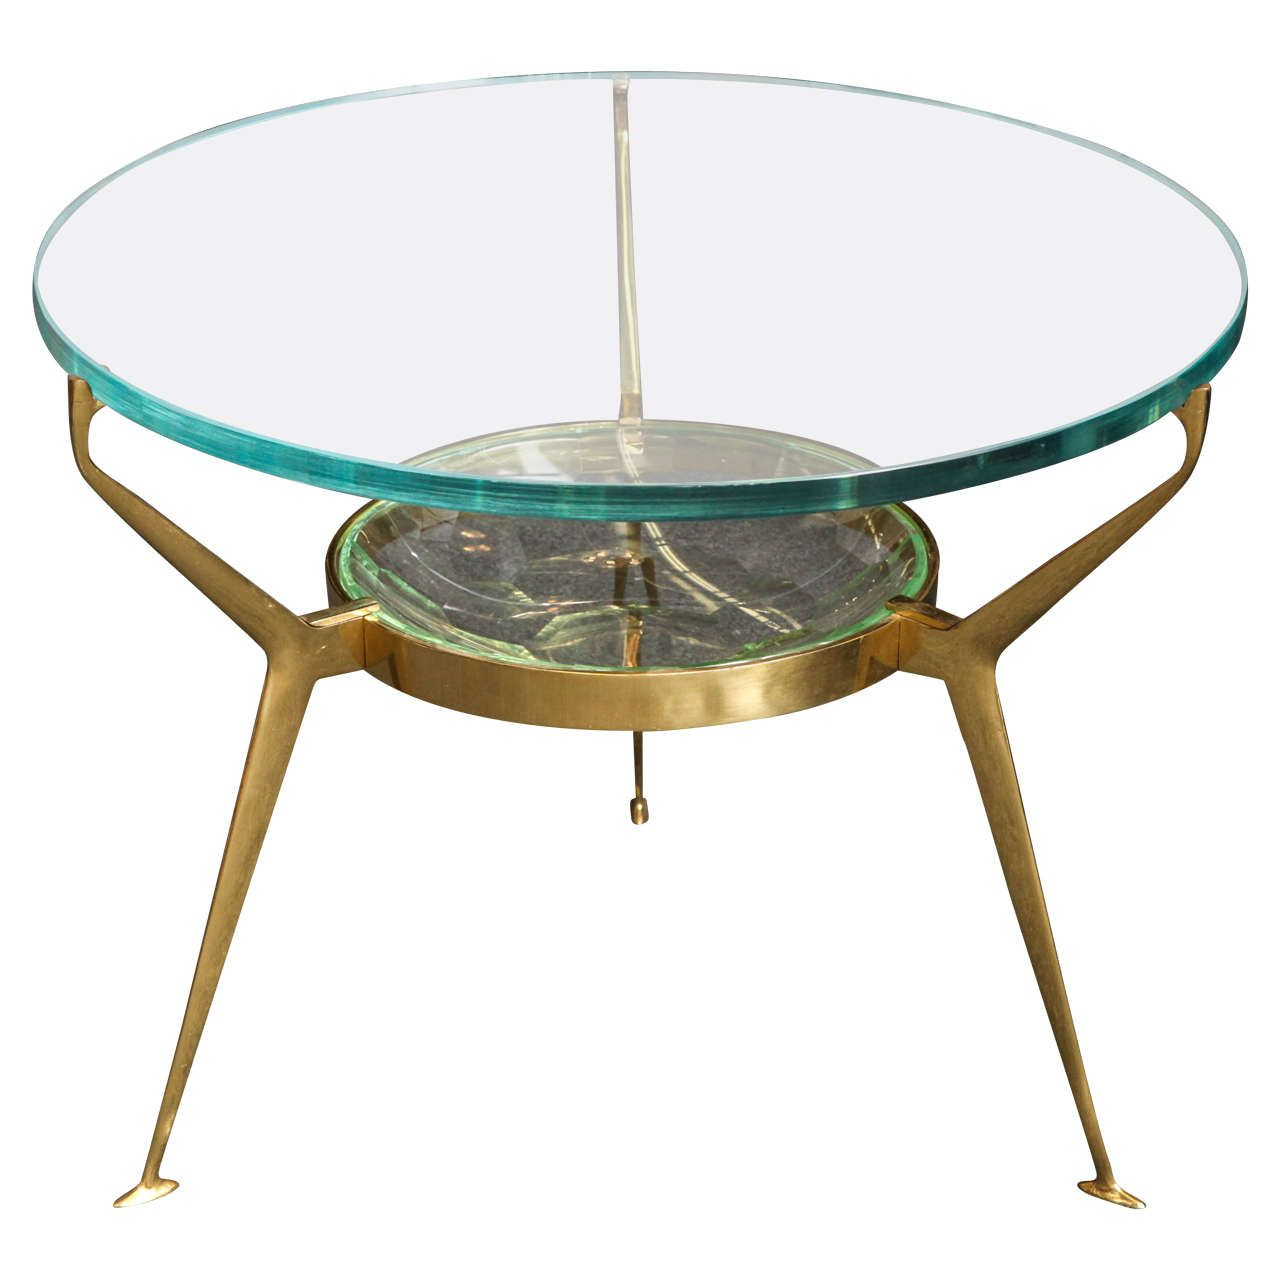 Fontana Arte Cocktail Table Made In Italy 1stdibs Com Coffee Table To Dining Table Table Vintage Table [ 1280 x 1280 Pixel ]